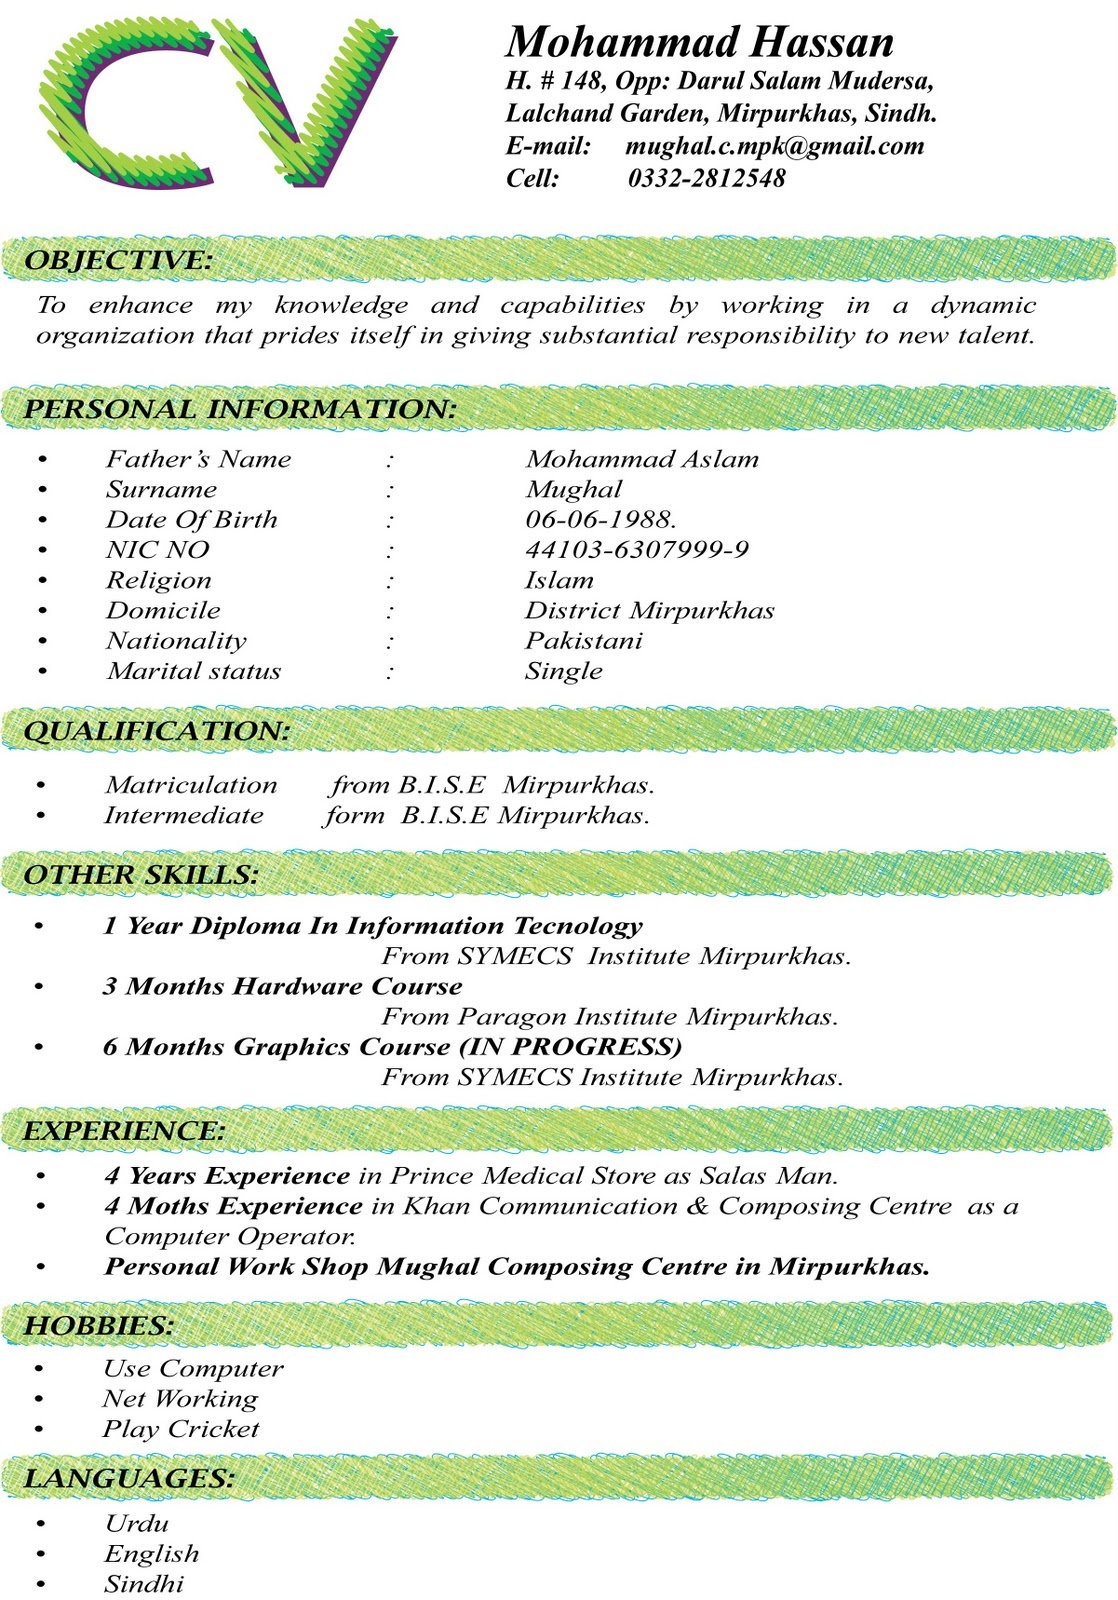 CV Format for Matric, Intermediate